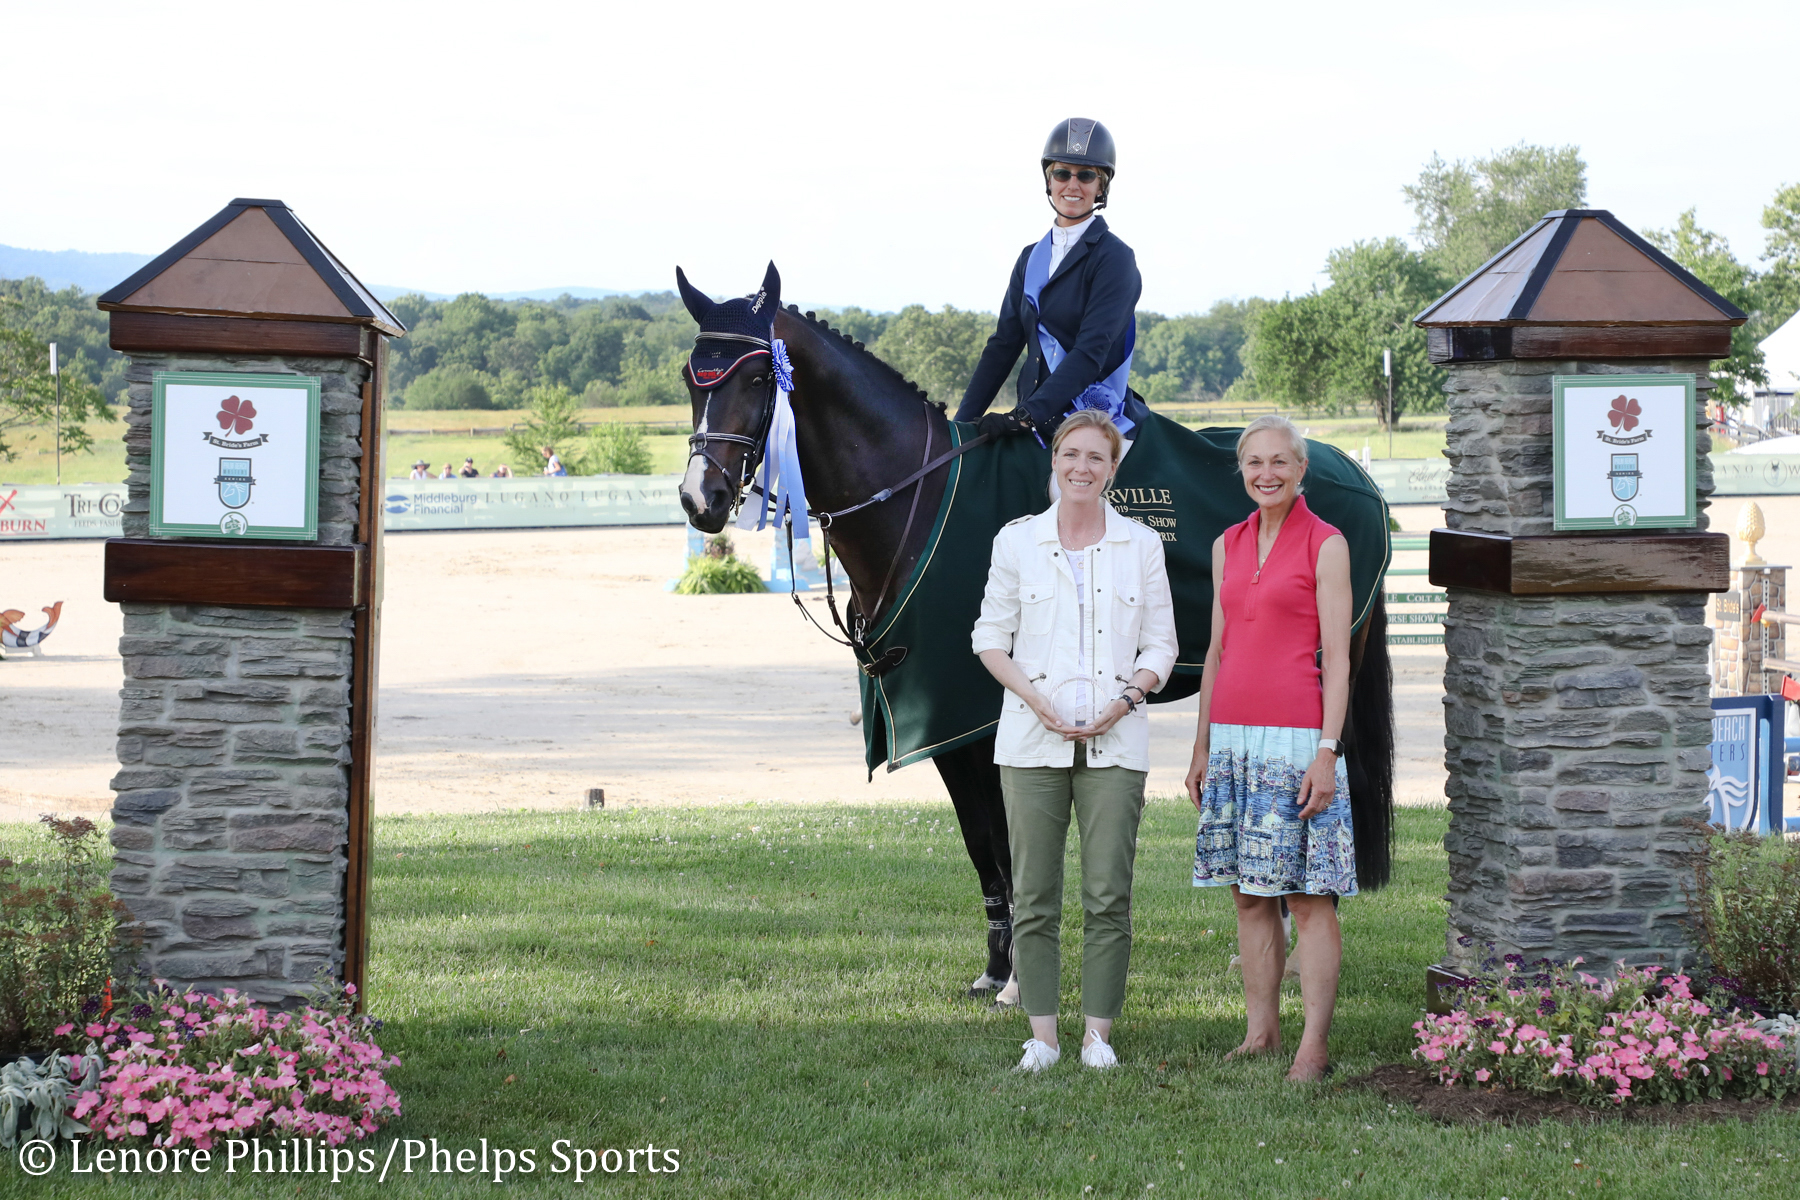 Schuyler Riley and Iceman de Muze with Kathy Russell of the Palm Beach Masters and Barbara Roux, President of Upperville Colt & Horse Show.